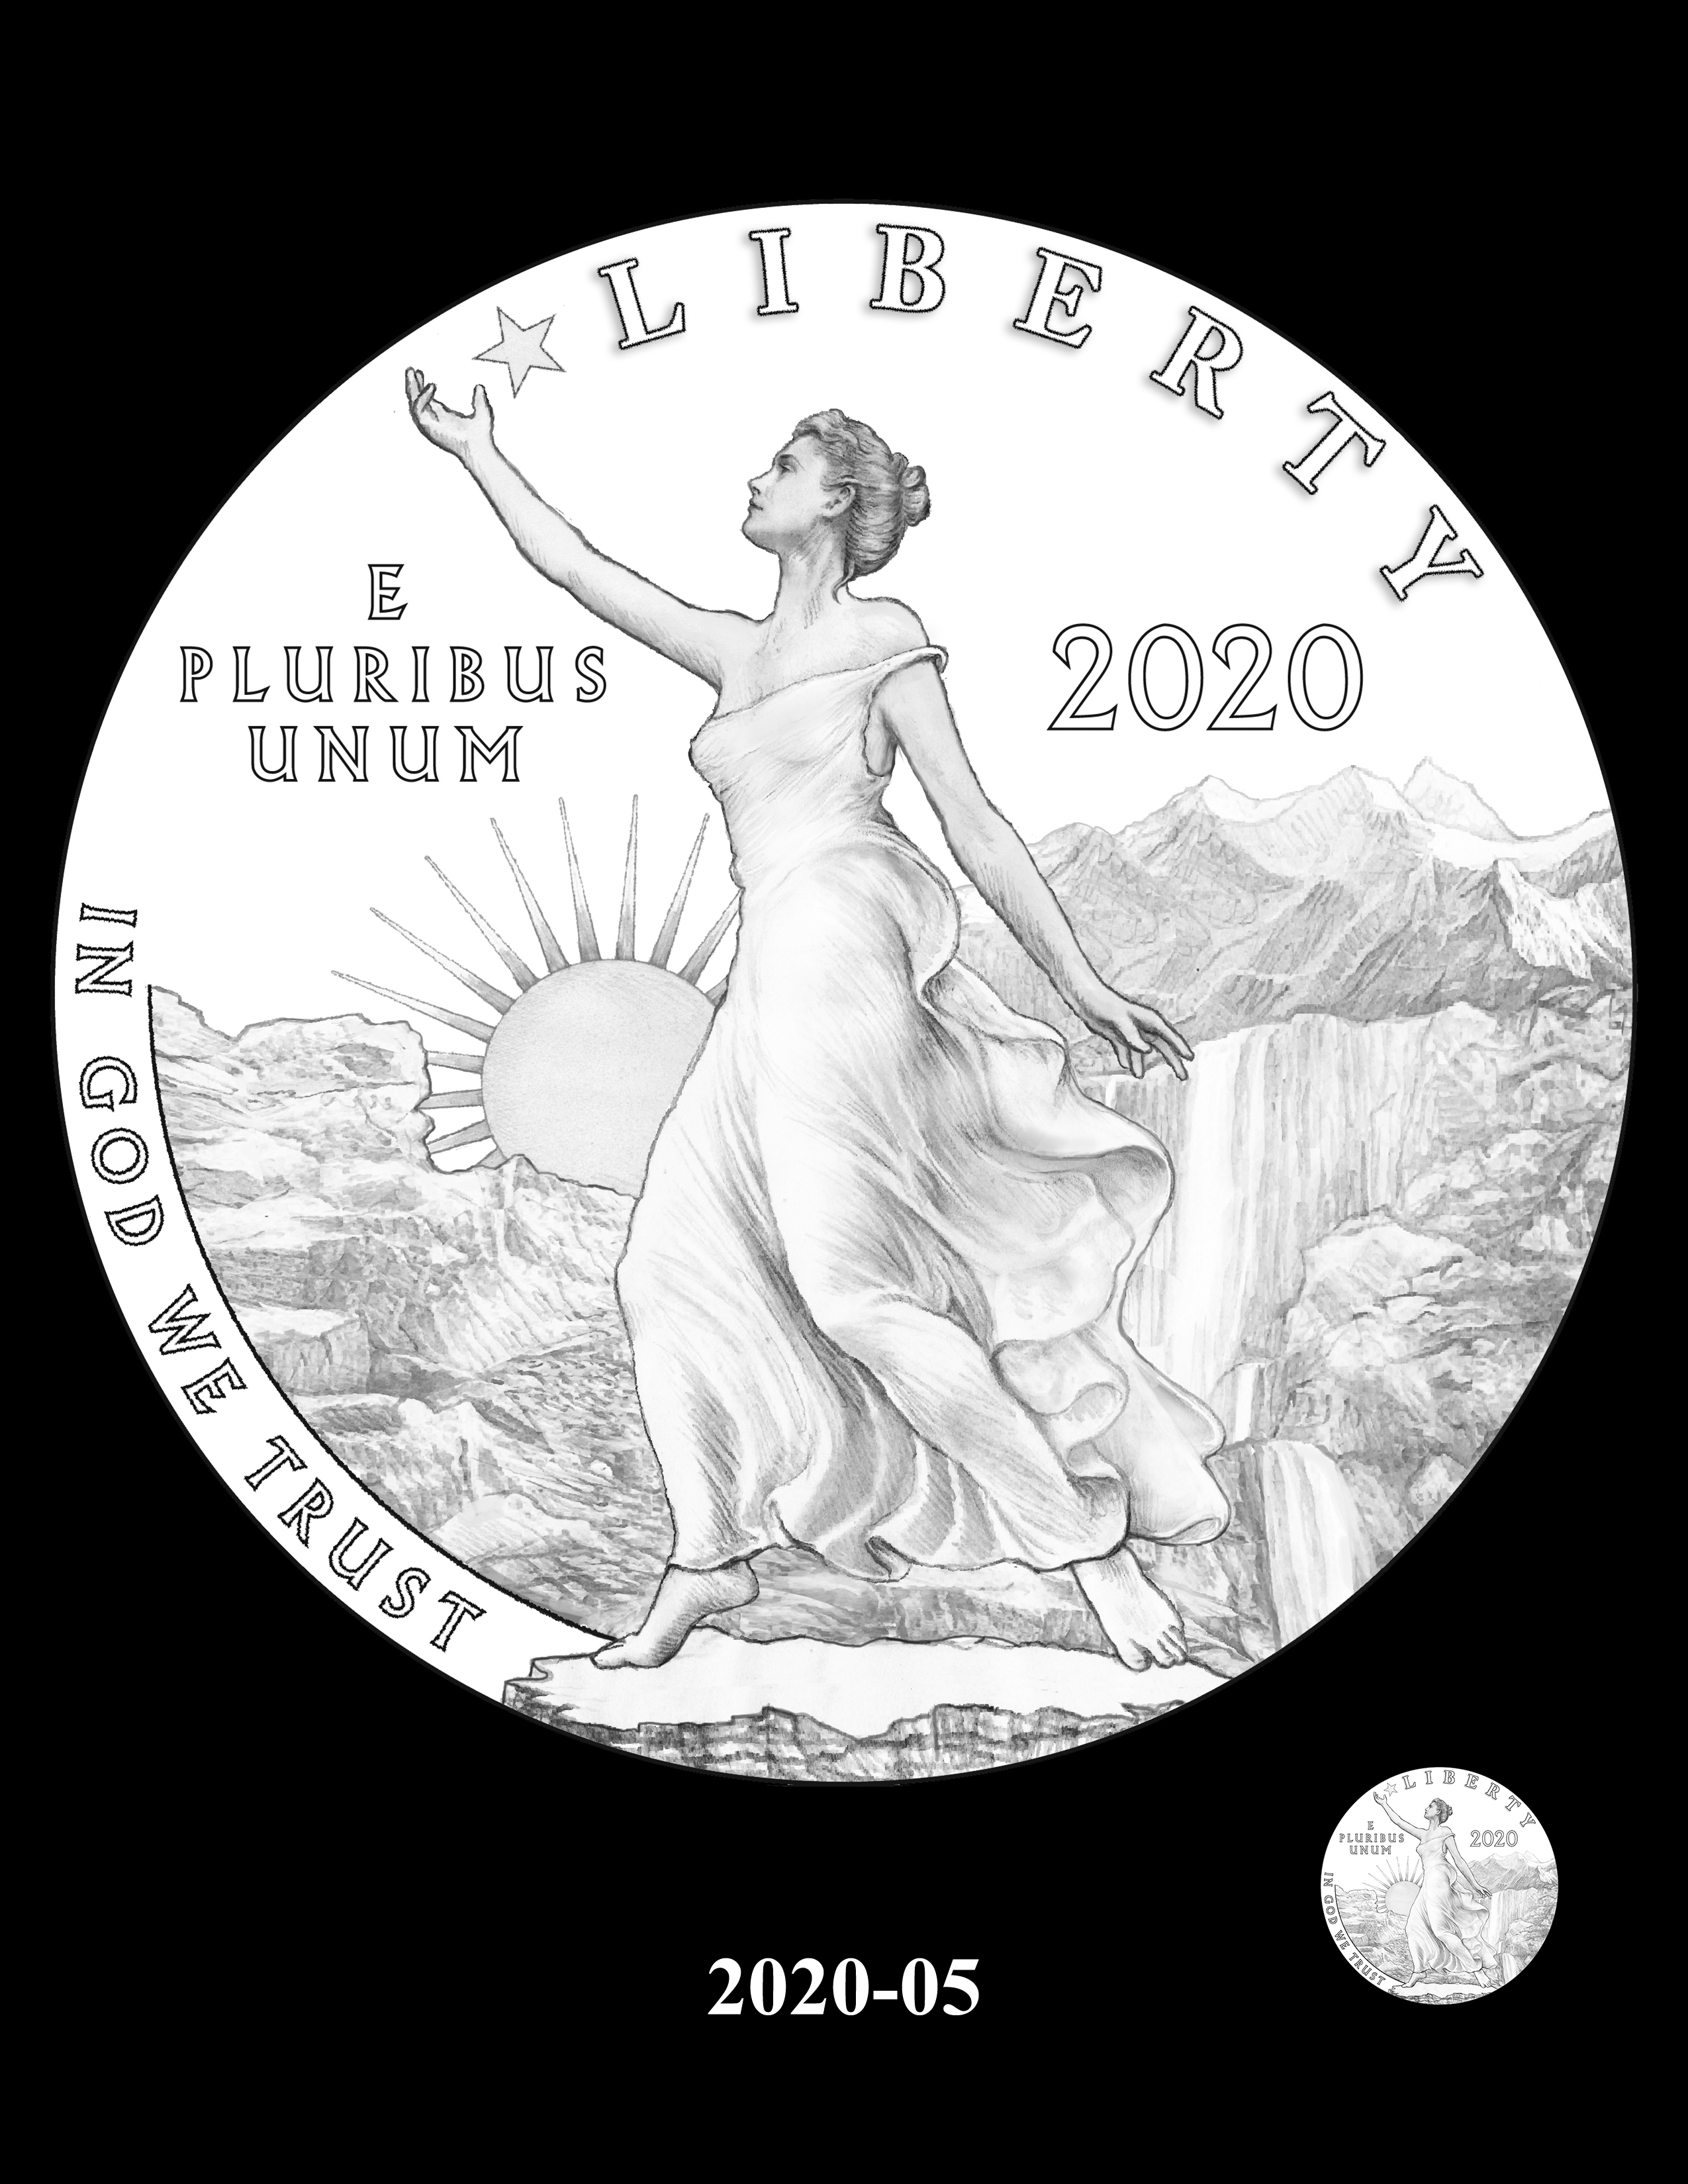 SET05-2020-05 - 2018 2019 and 2020 American Eagle Platinum Proof Program